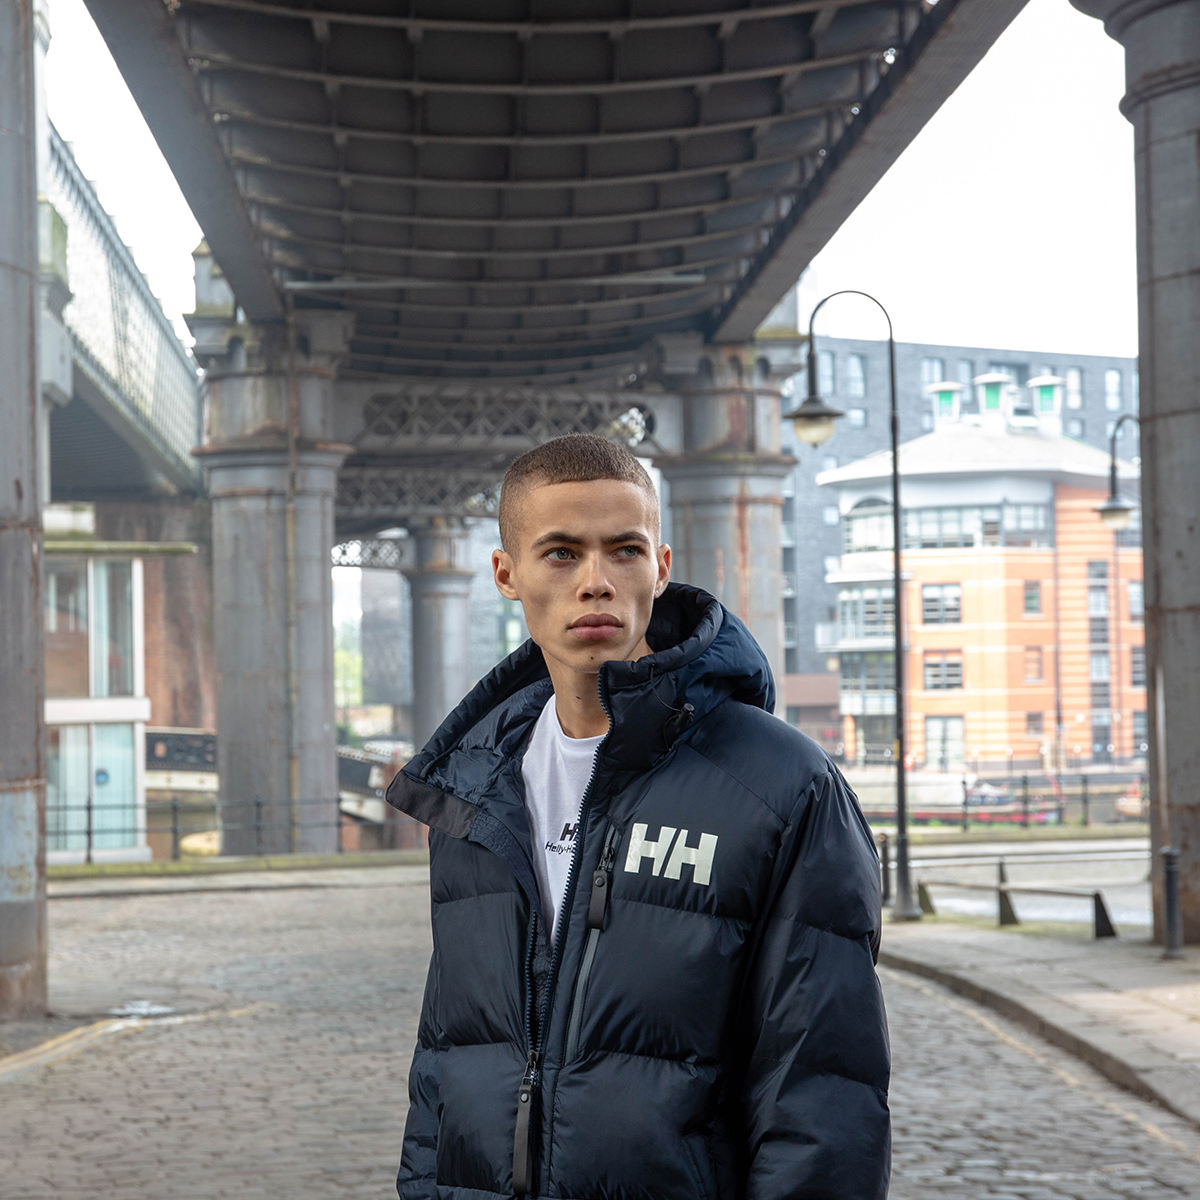 A man stands under a bridge wearing a black Helly Hansen coat.